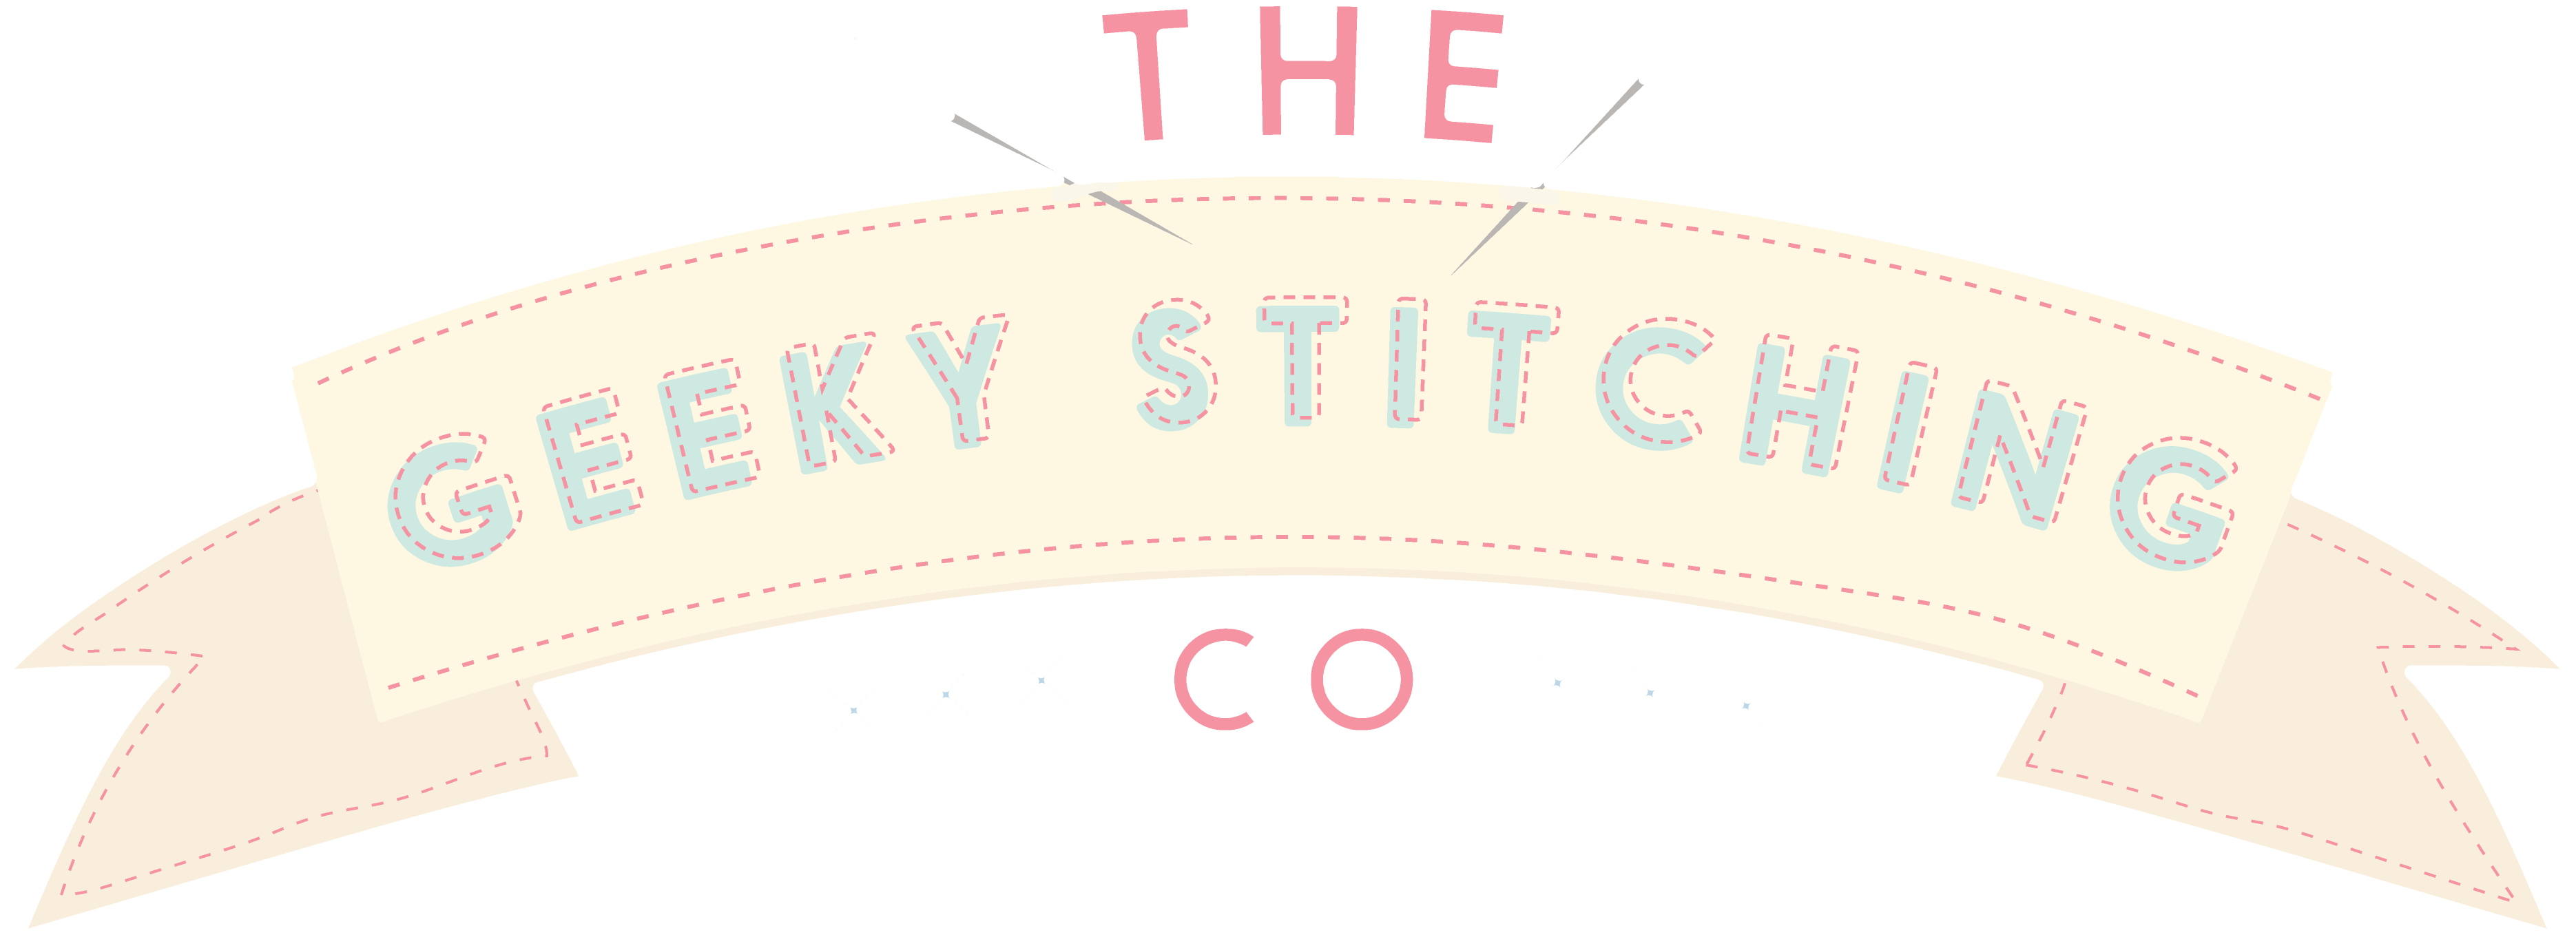 The Geeky Stitching Company